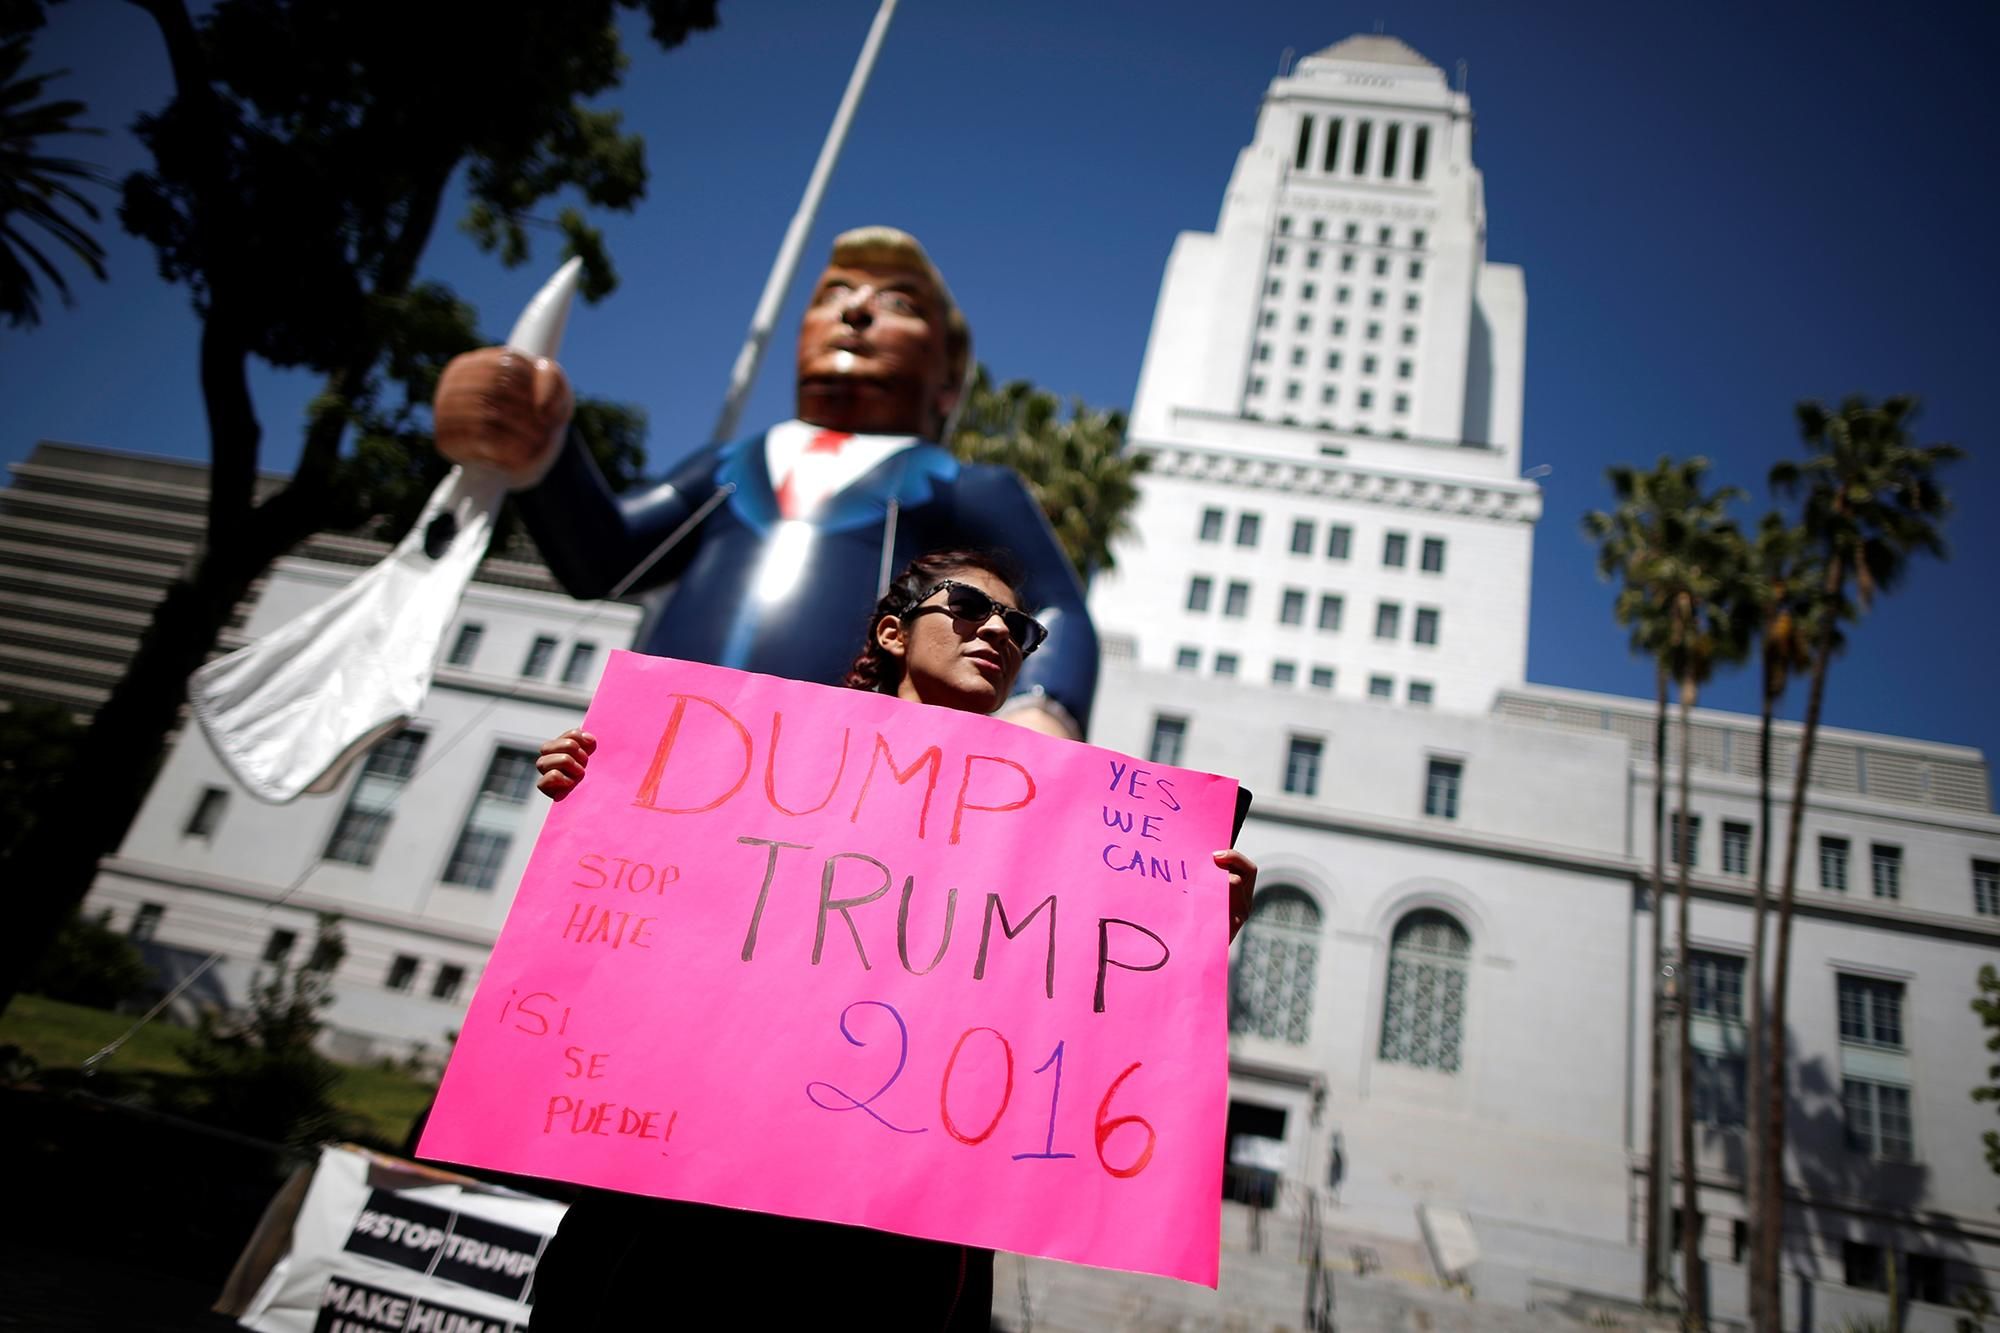 Dump Trump: A protester holds an effigy of Donald Trump at an immigrant rights May Day march in Los Angeles, Calif. (Photo: Lucy Nicholson/Reuters)